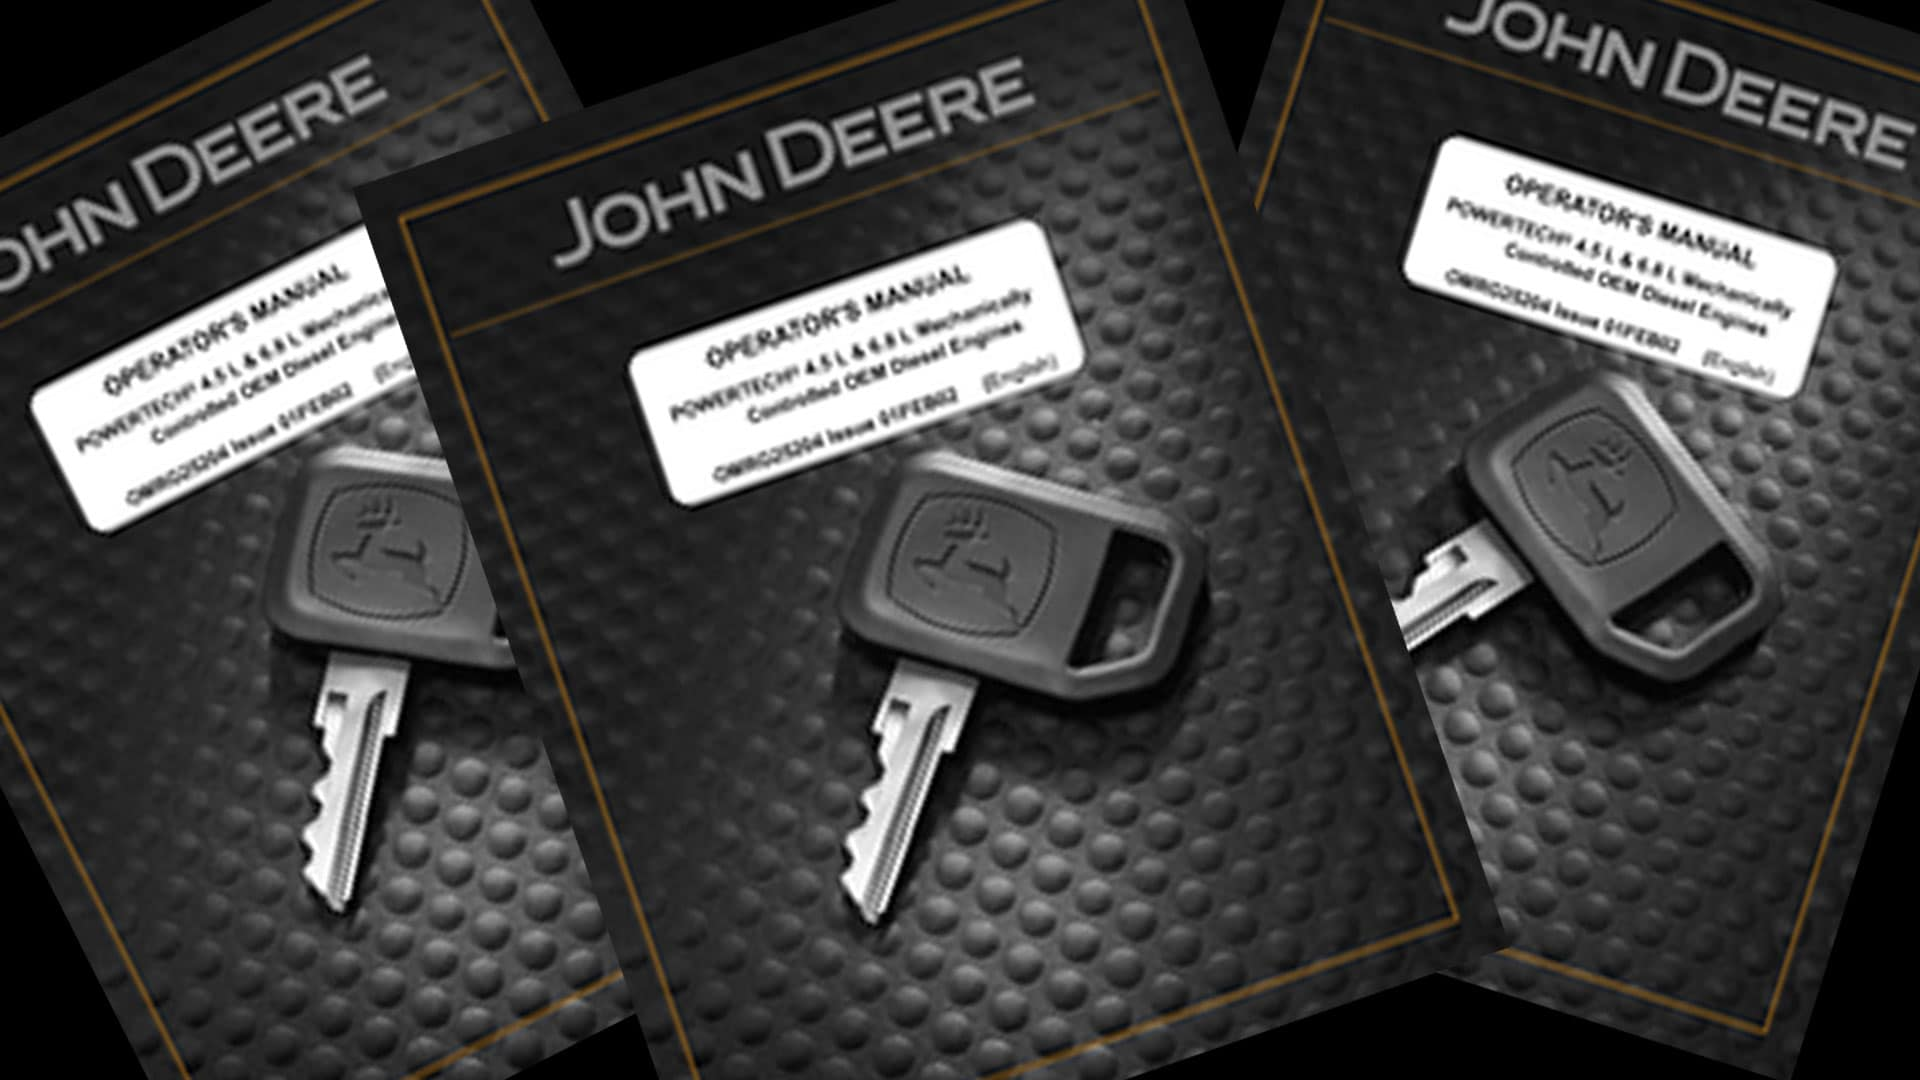 Manuals and Training | Parts & Service | John Deere US on john deere 4440, john deere 310a, john deere 410a, john deere 7020, john deere 410d, john deere 7520, john deere 7030, john deere 310s, john deere 410b, john deere 4455, john deere 510a, john deere 6030, john deere 4840, john deere 310j, john deere 435, john deere 410c, john deere 310c, john deere 310l, john deere 4320, john deere 310d,